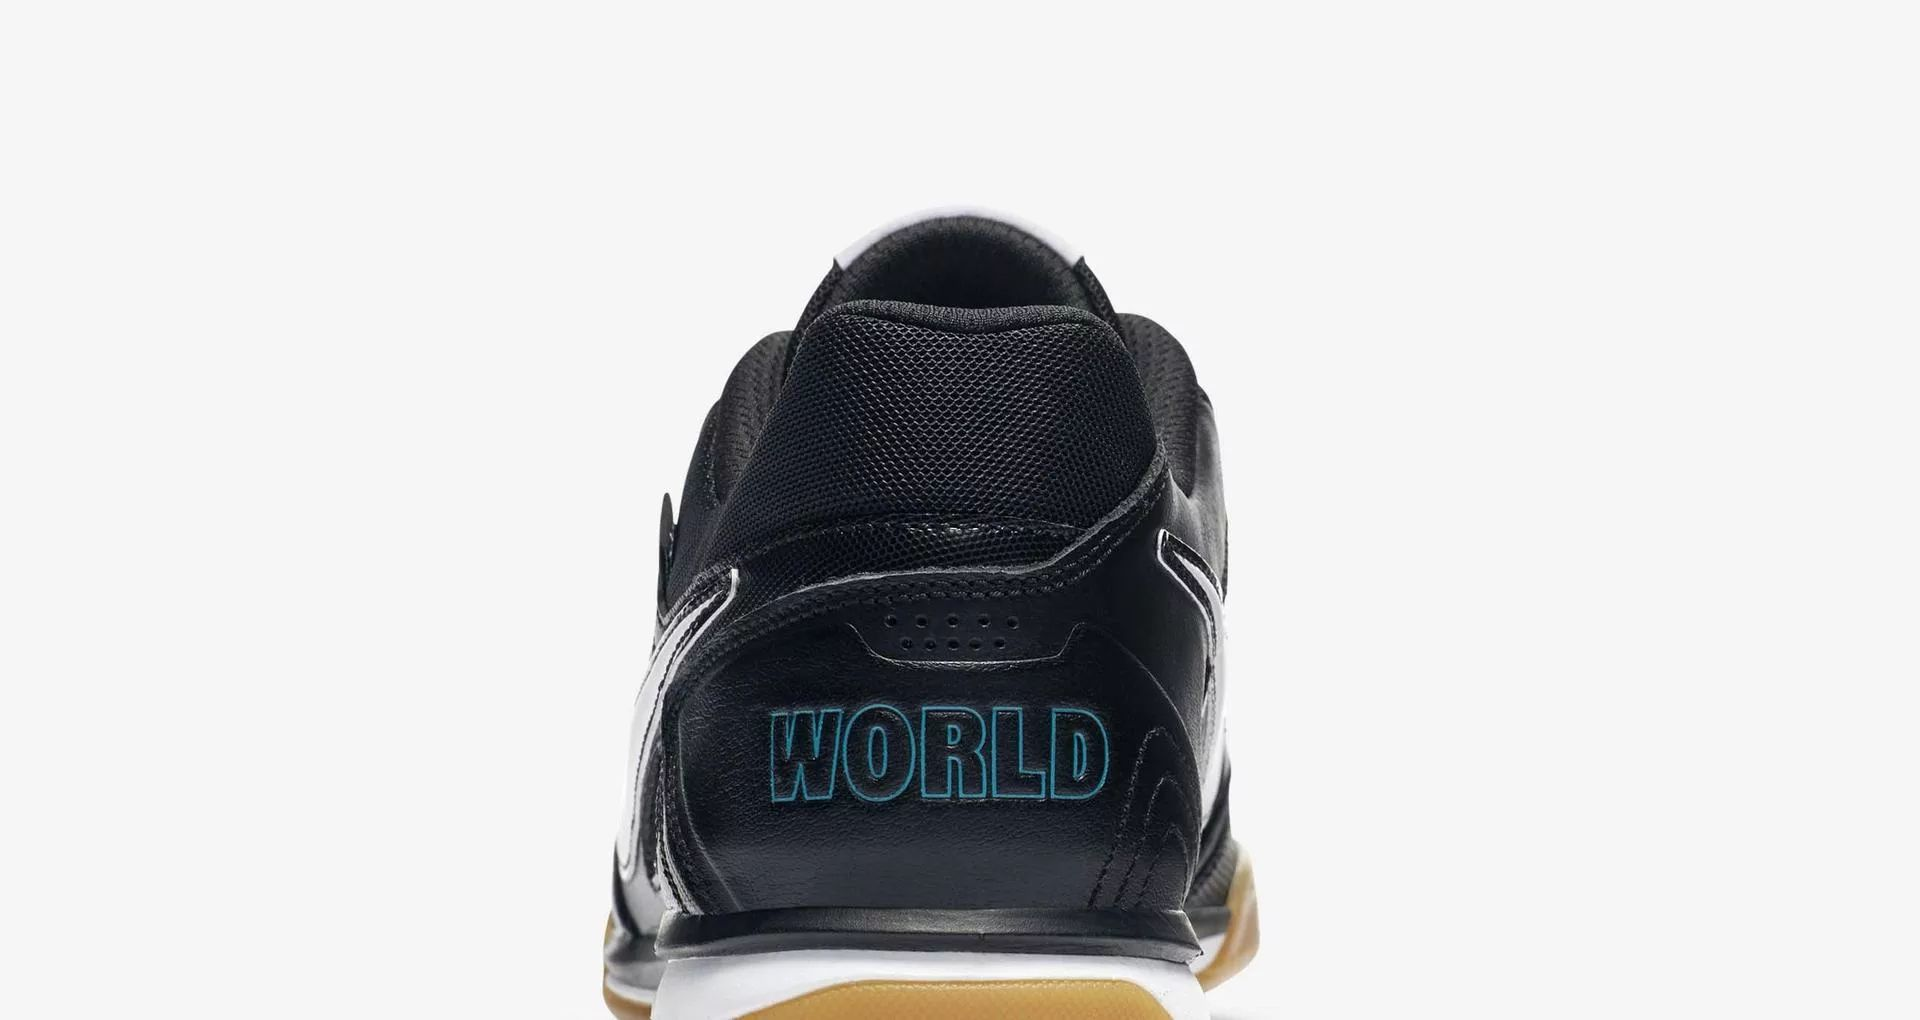 nike-sb-gato-qs-supreme-black-white-spirit-teal